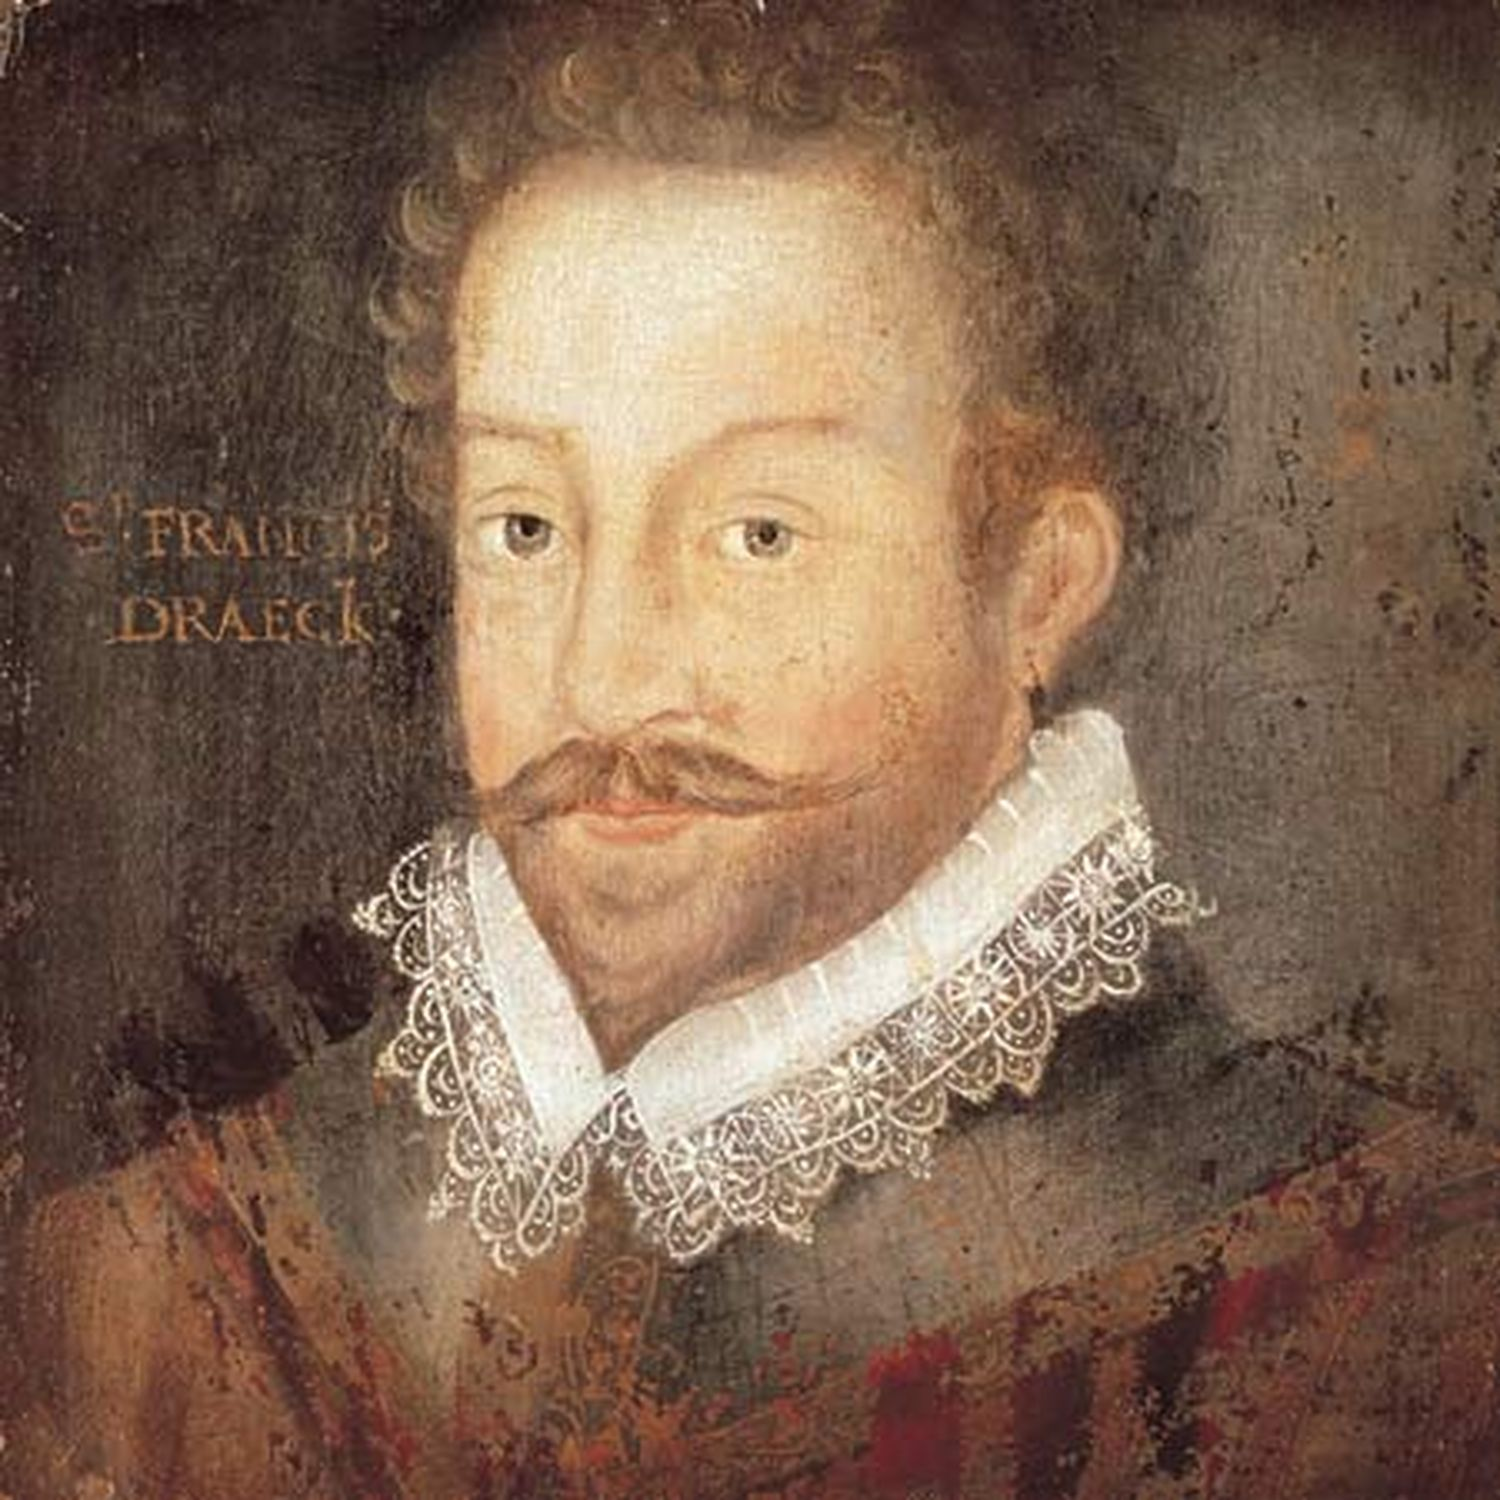 Episode 031 - Trade and Exploration in Elizabethan England